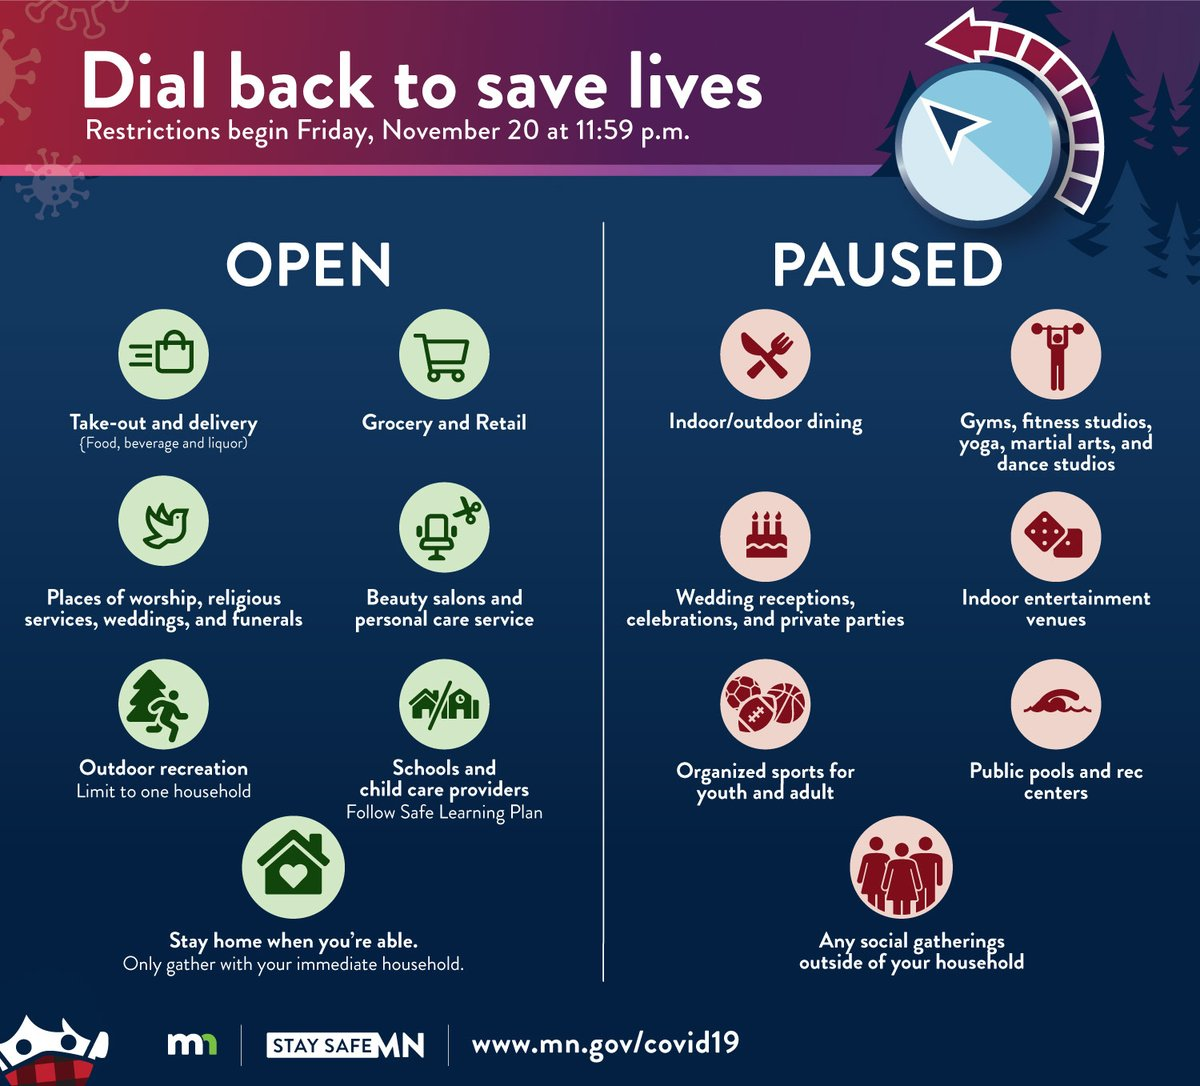 We lost 72 Minnesotans to COVID-19 yesterday. Now is the time for all of us to come together and slow the spread. Remember: Starting tonight, in-person dining, sports, and gyms will be set on pause for four weeks. These changes are incredibly difficult, but they will save lives.